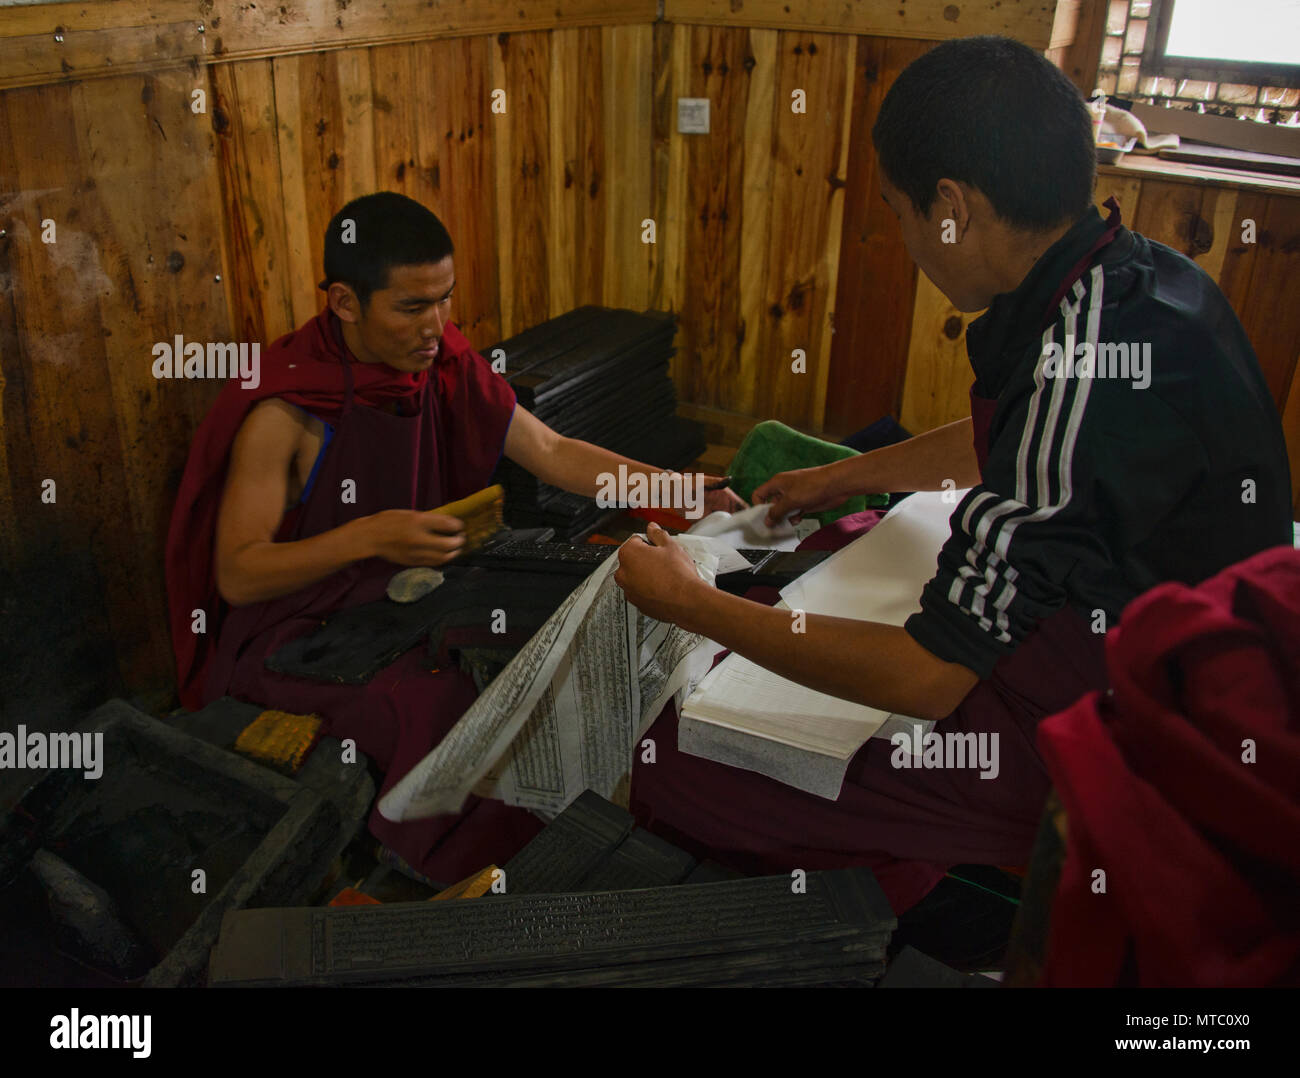 Monks at the Barkang printing press at Labrang Monastery, Xiahe, Gansu, China - Stock Image